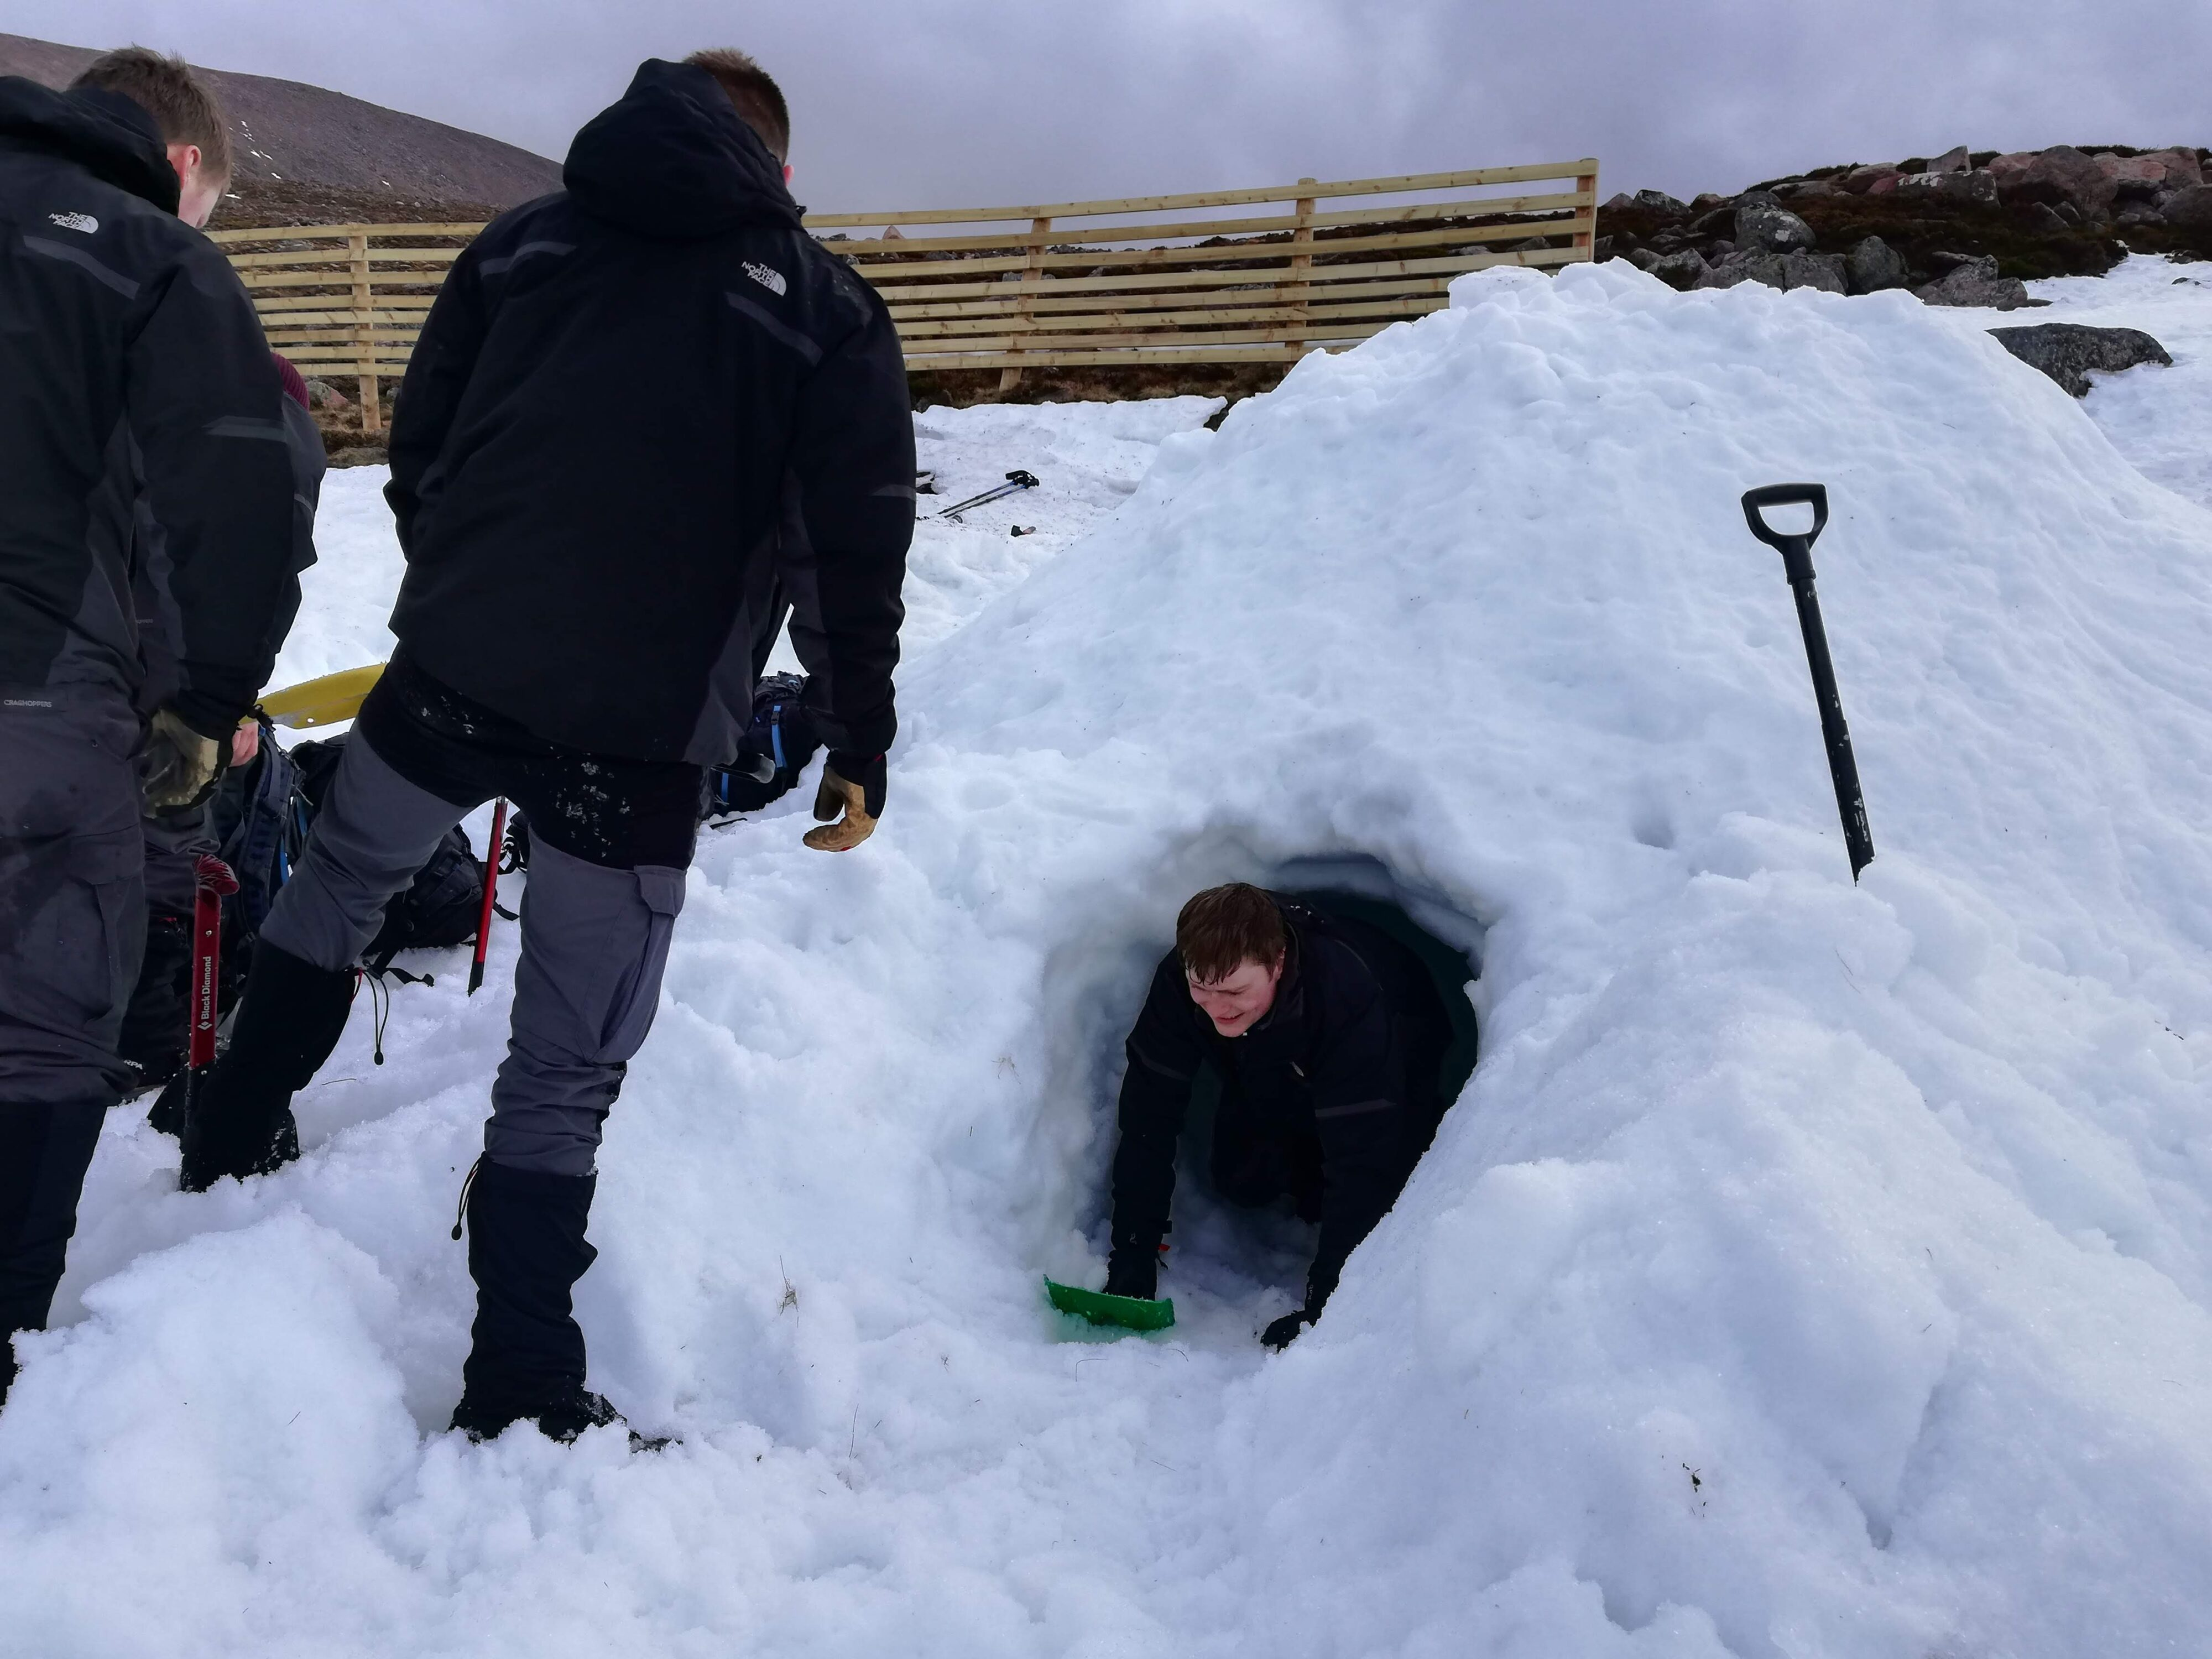 Winter Mountaineering emergency shelters shovel up